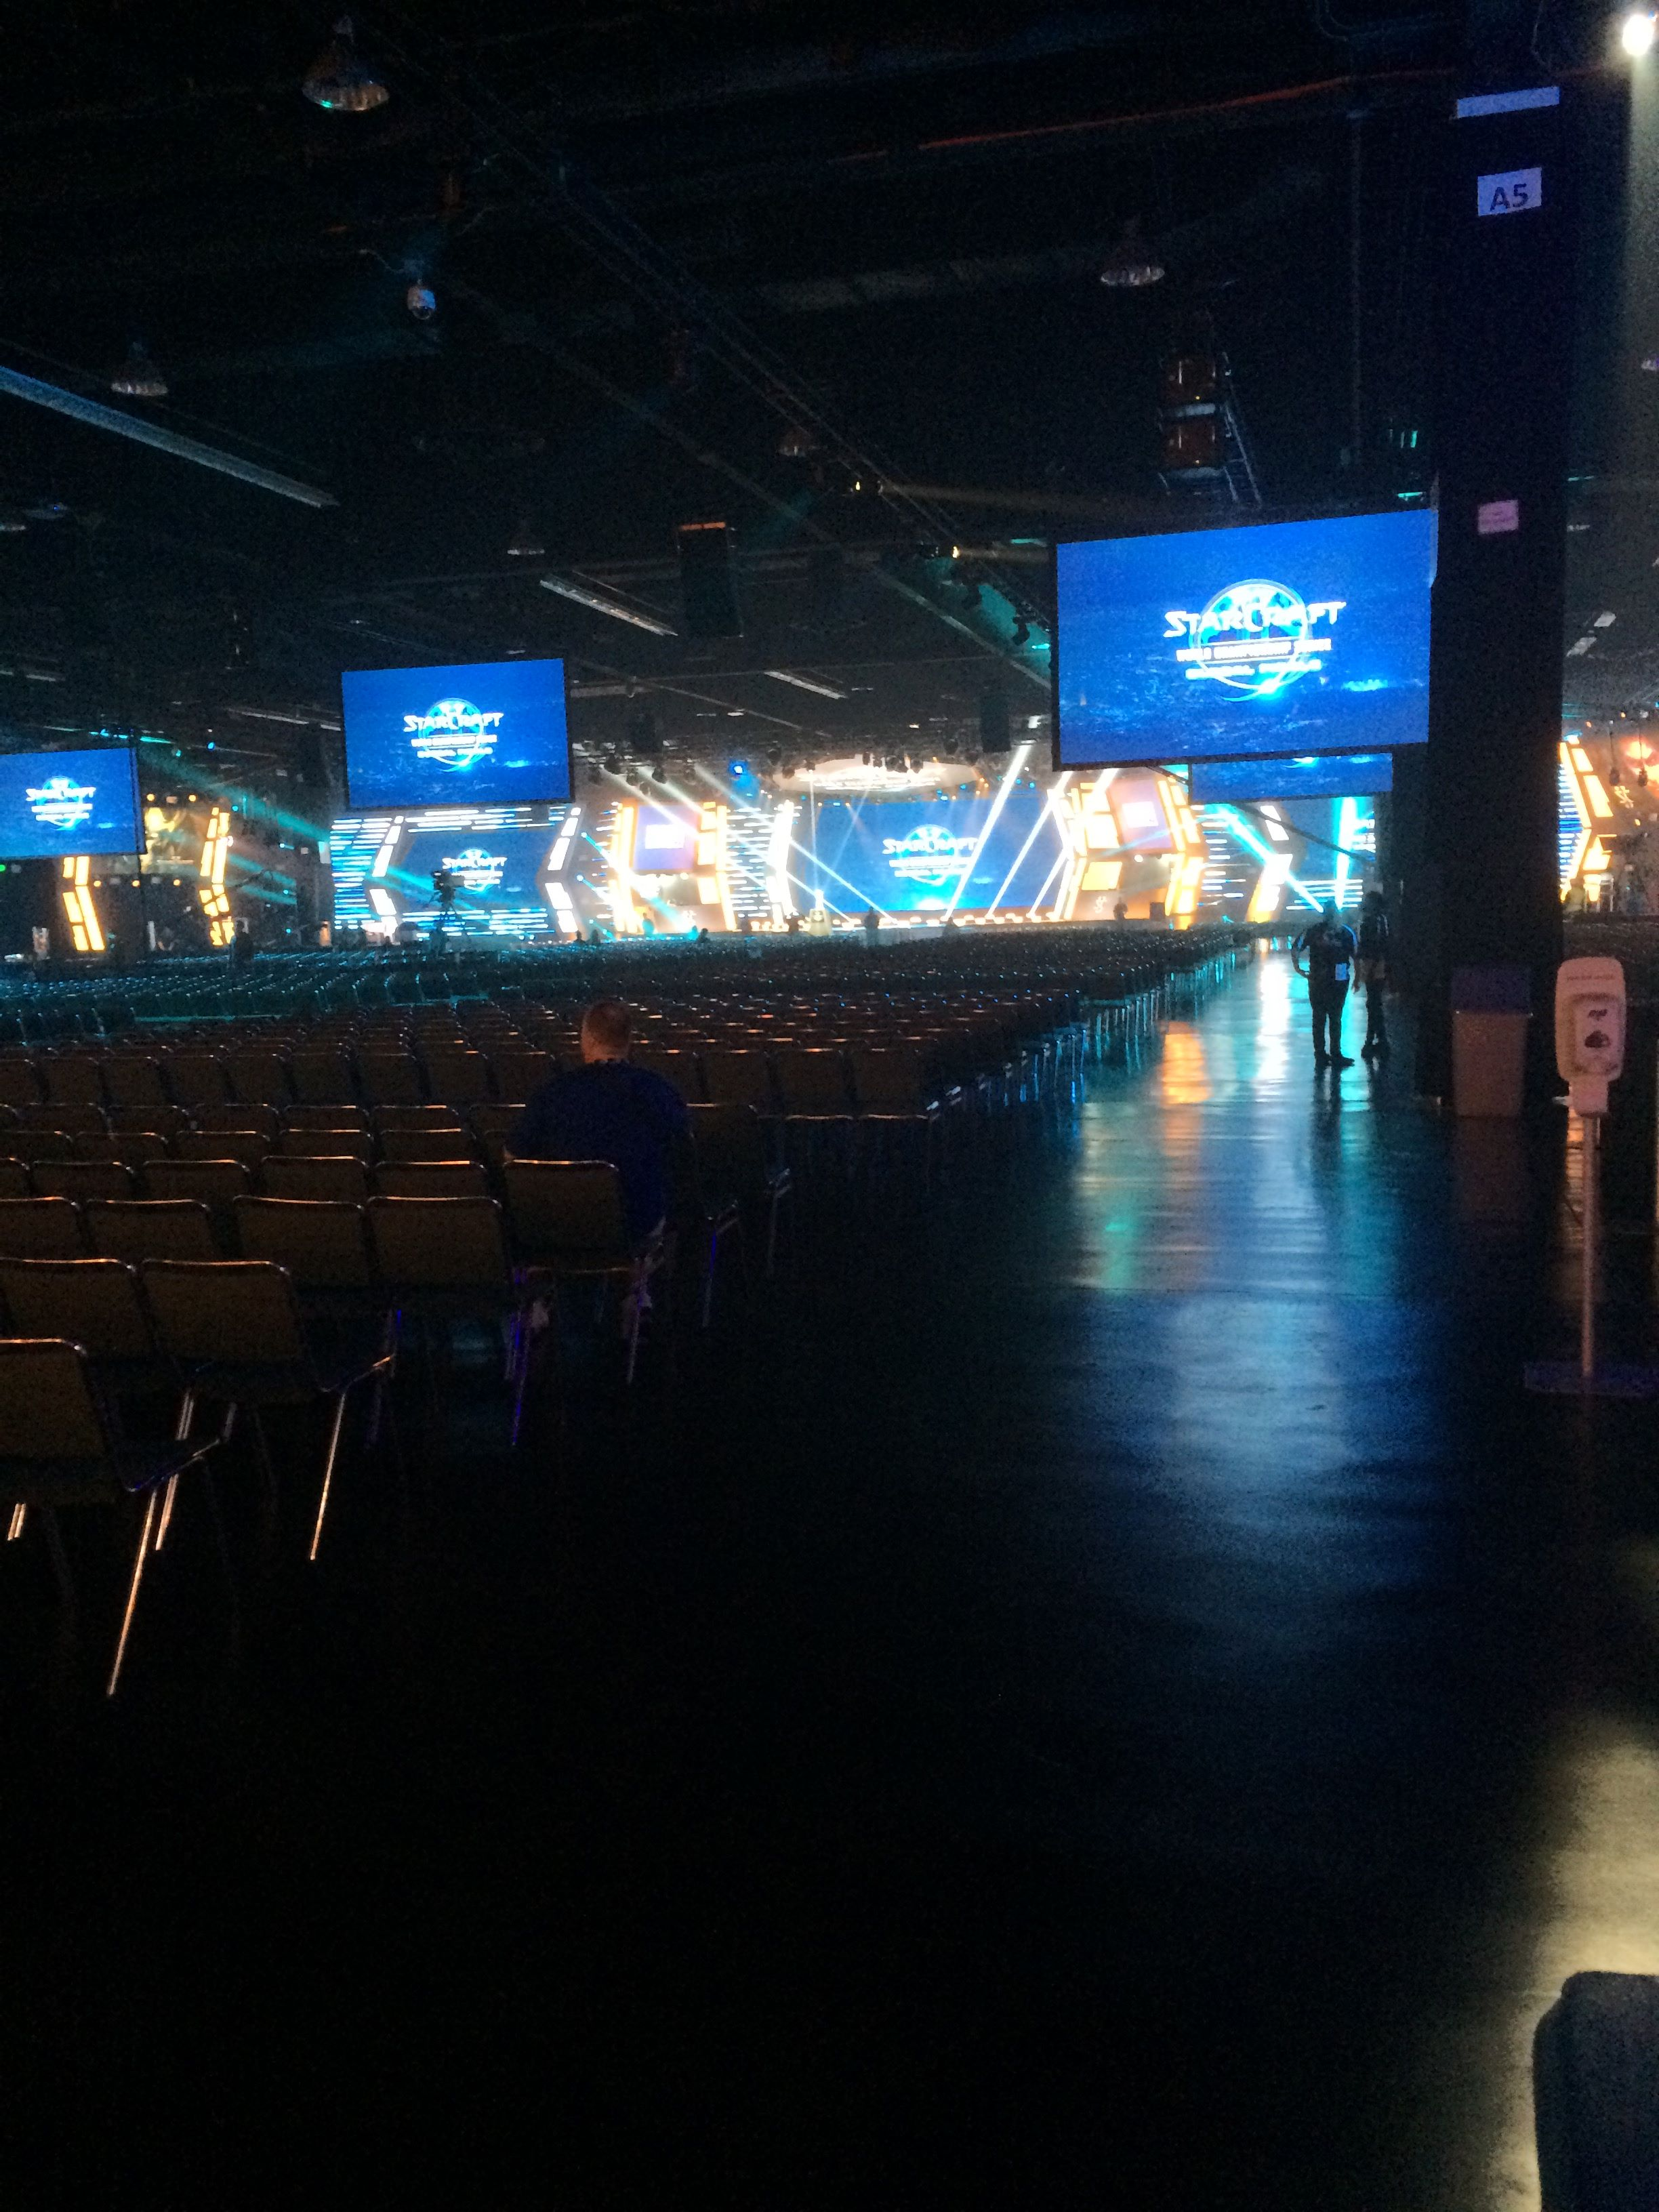 The StarCraft stage at BlizzCon 2017.